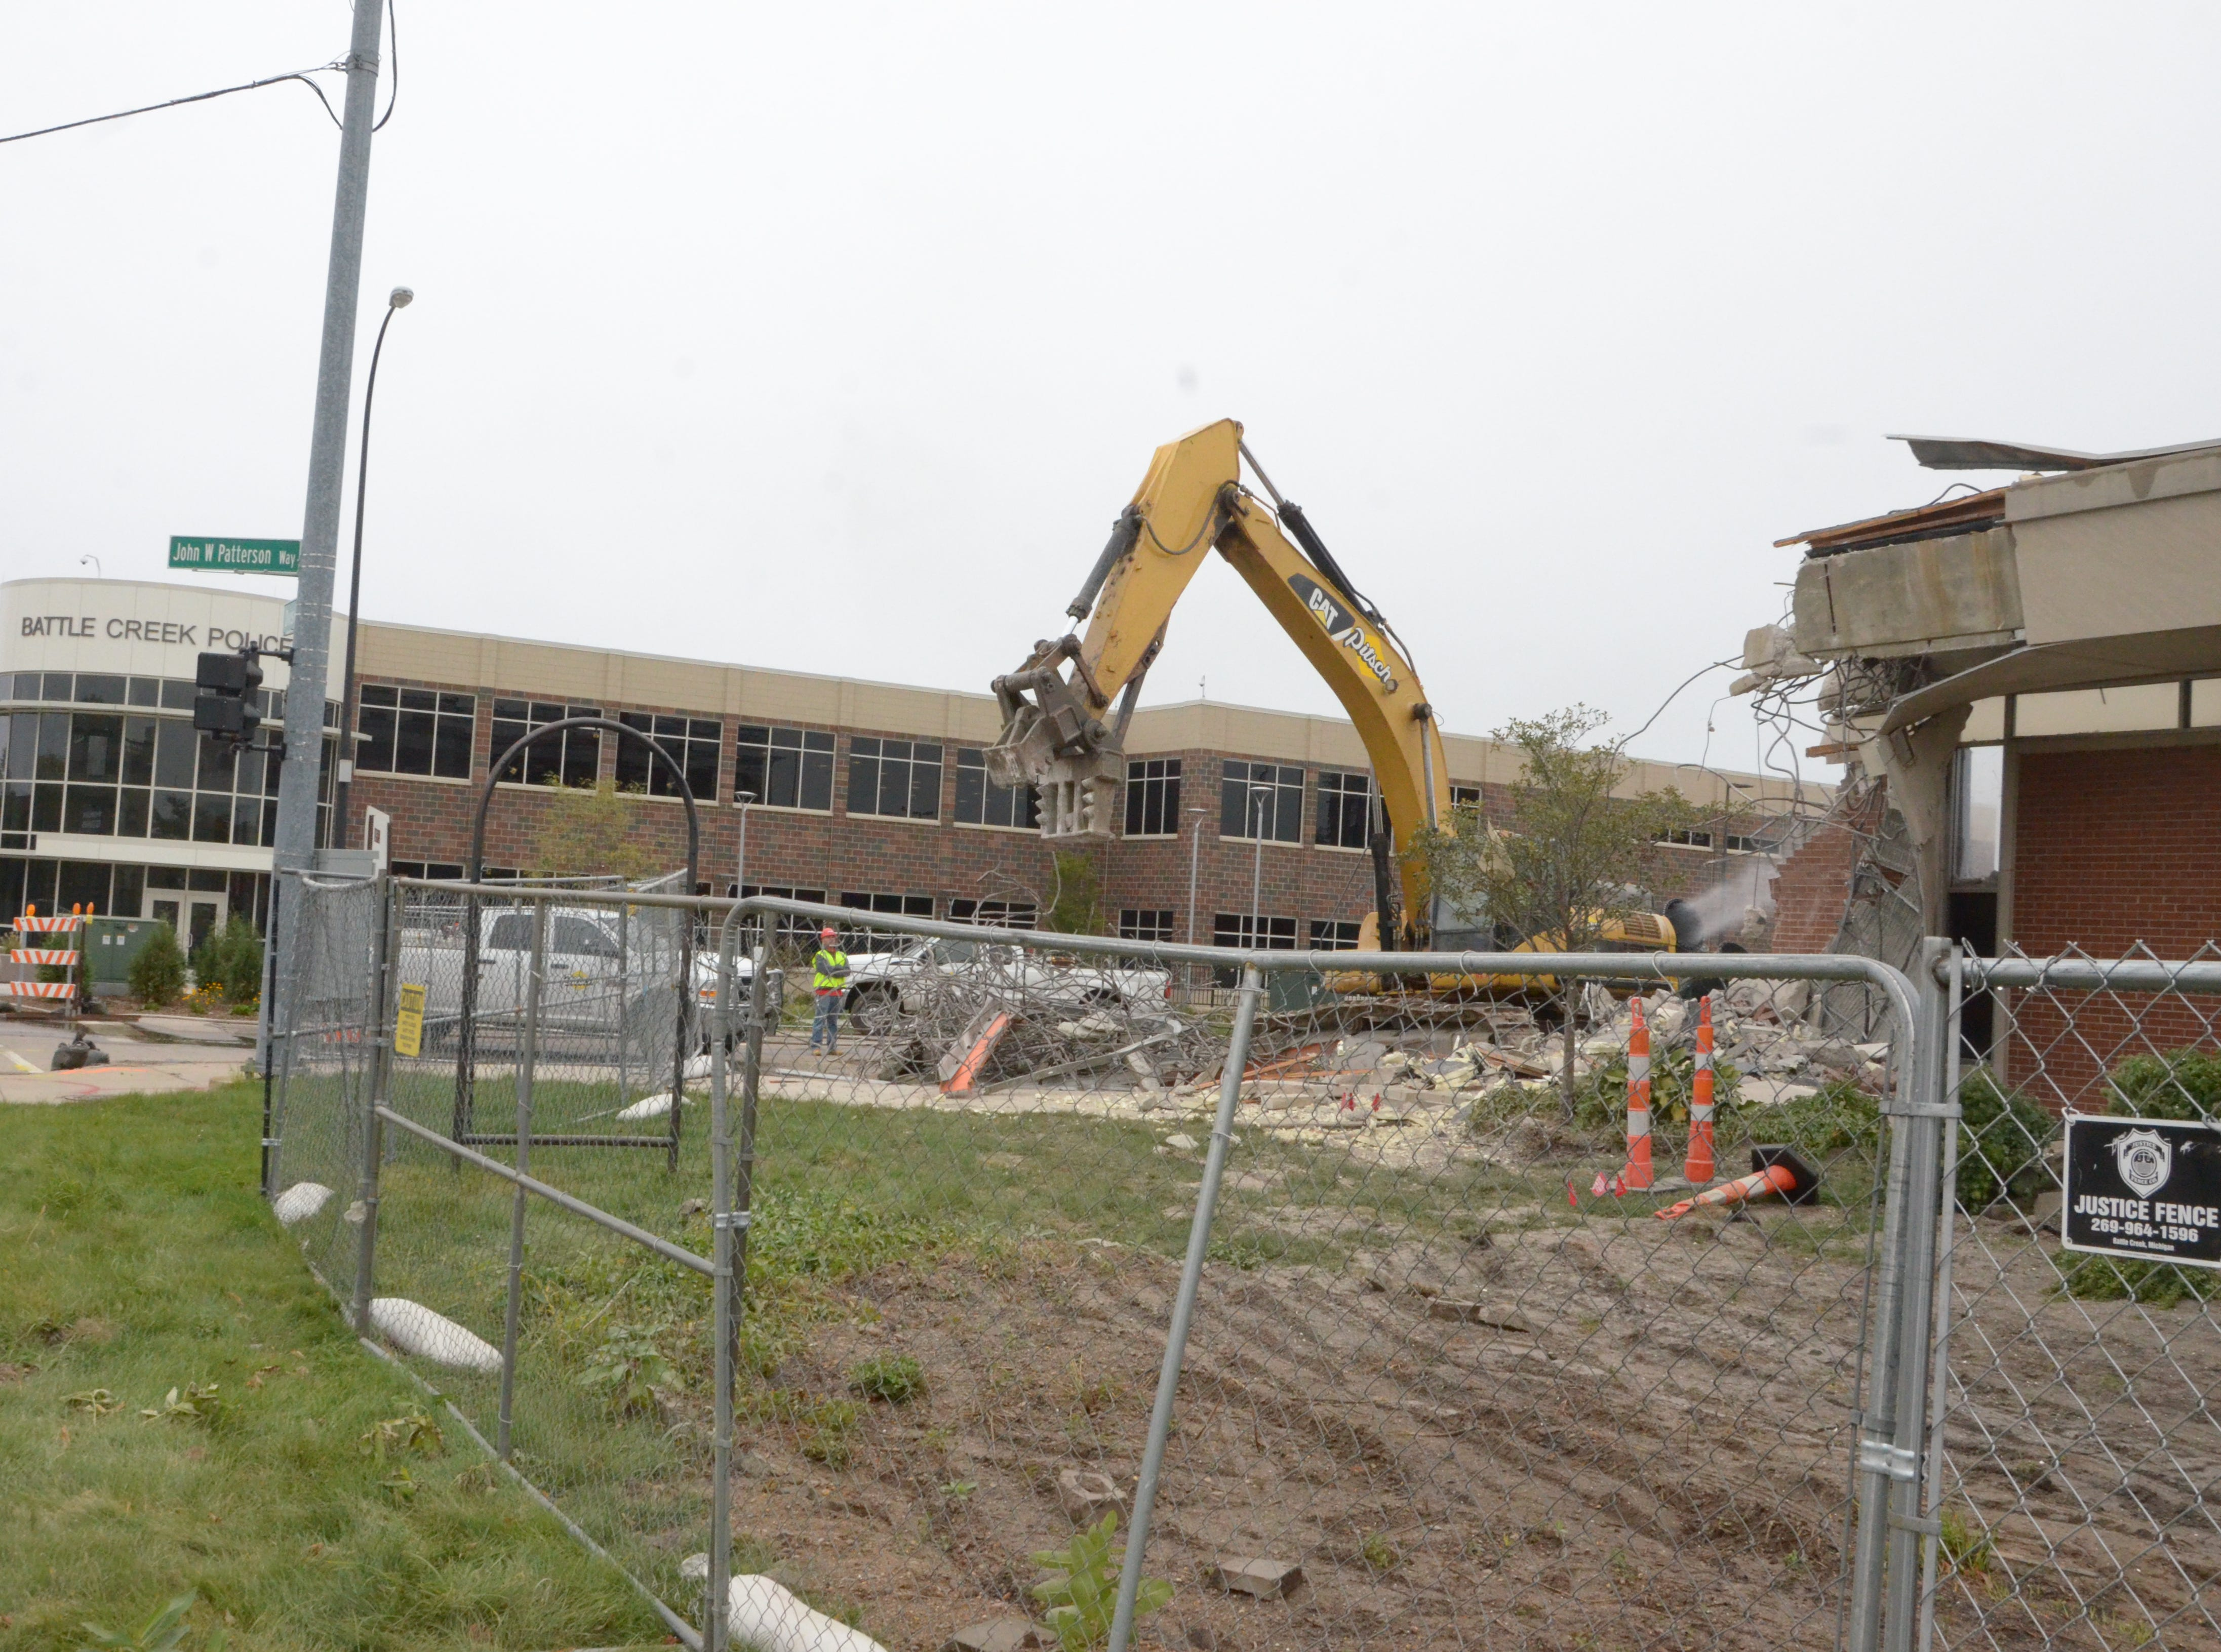 The old Battle Creek Police Department headquarters is coming down. The new $15.5-million headquarters next to the old headquarters opened in August.